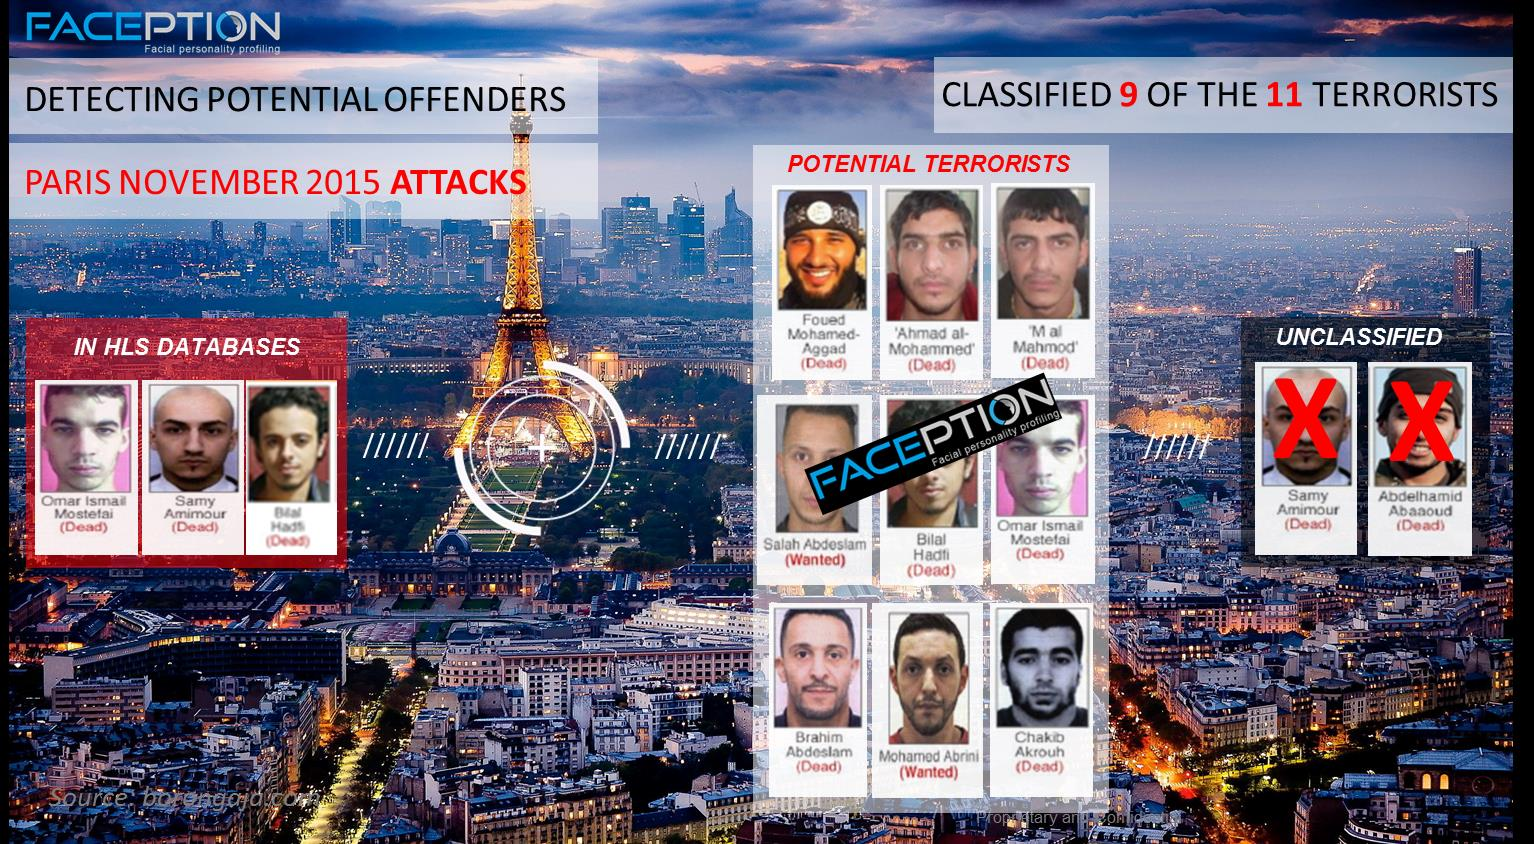 Faception facial recognition software identifying terrorists